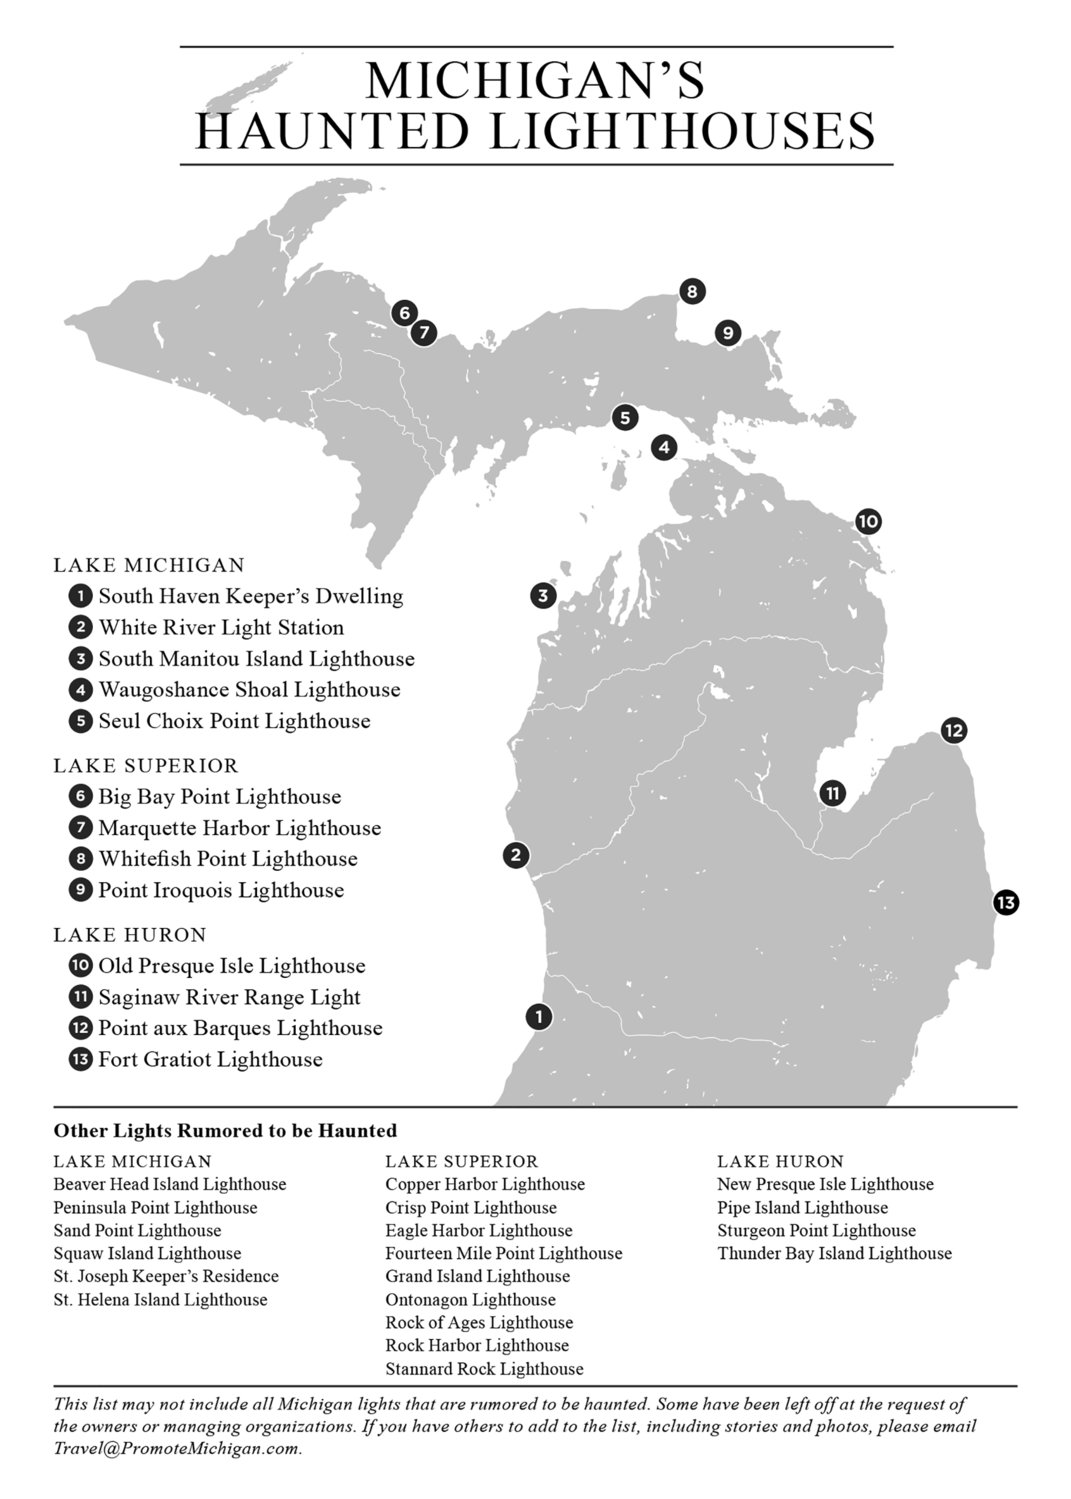 Great Lakes haunted lighthouses.